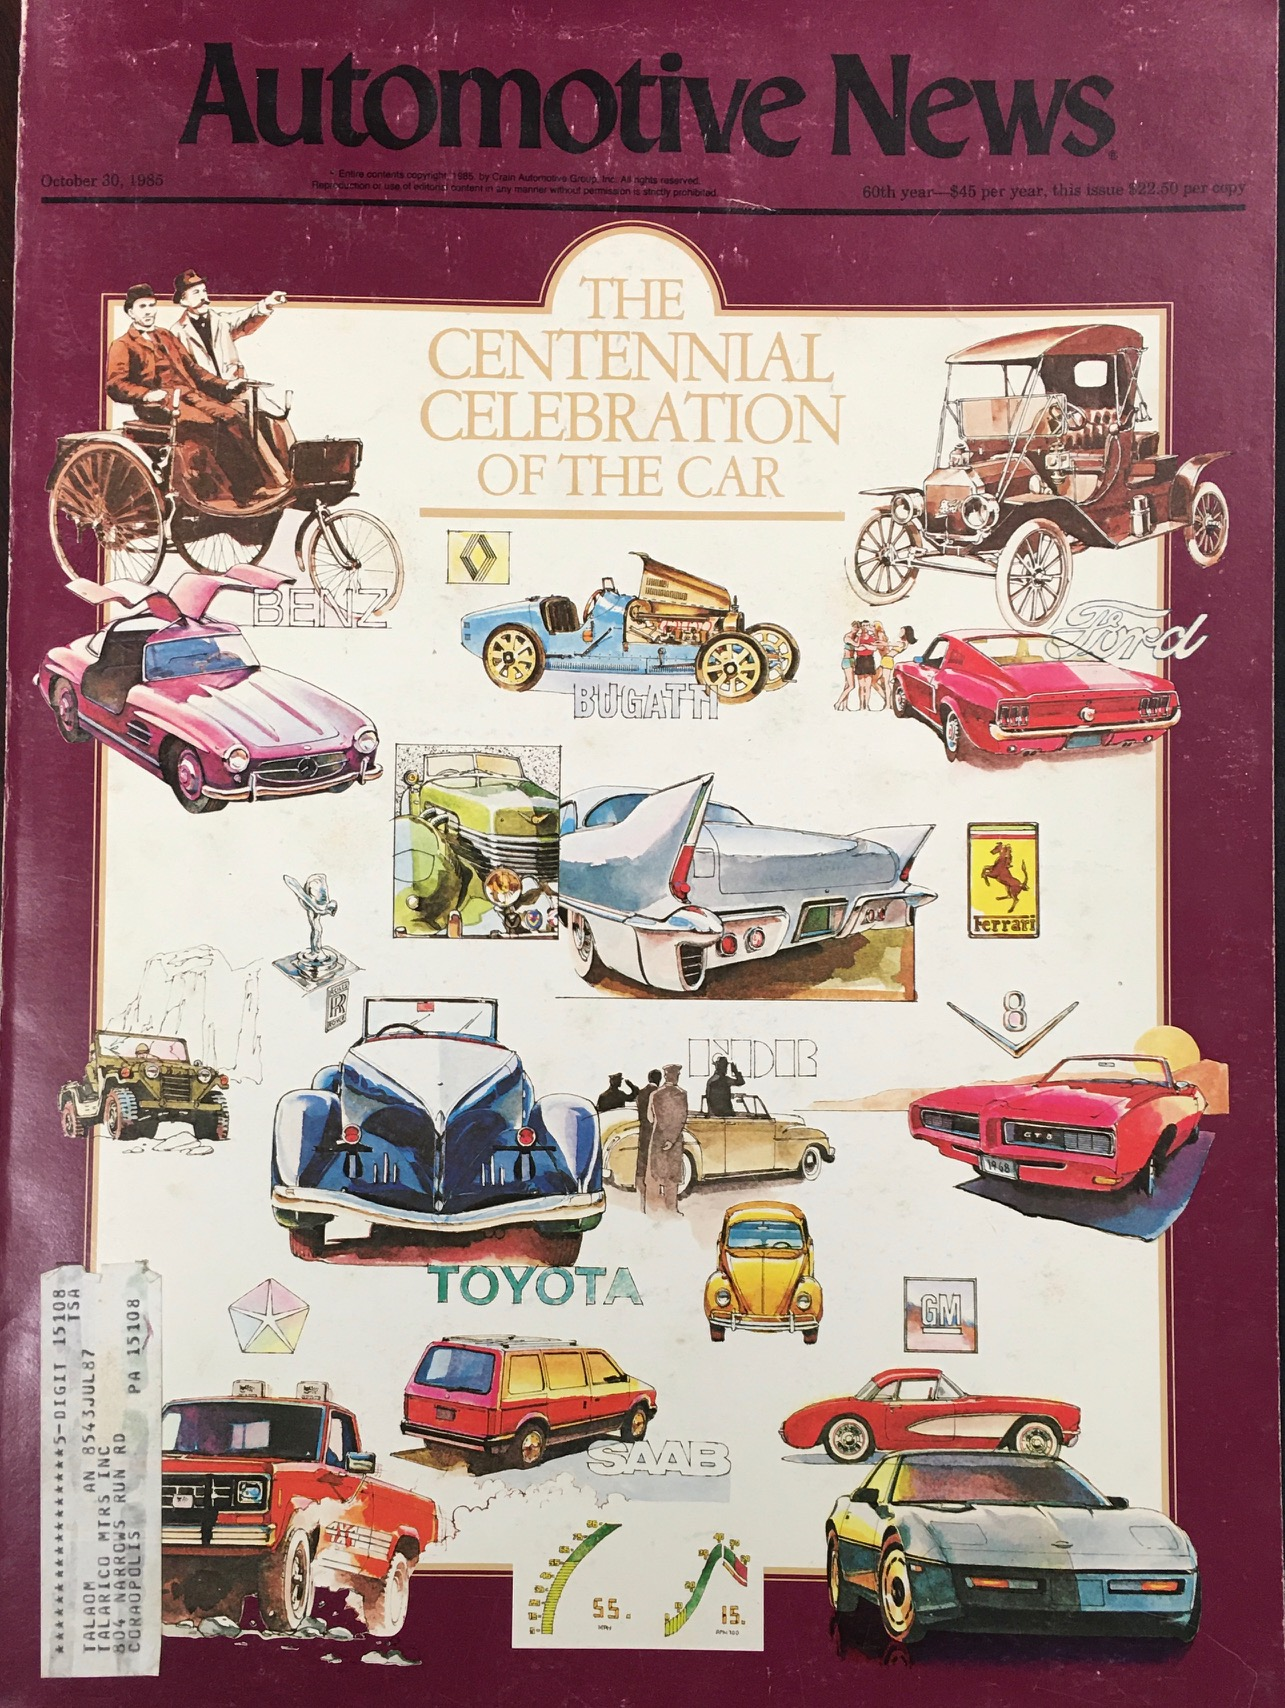 Image for Automotive News  - The Centennial Celebration of the Car Edition (Octorber 30, 1985 - 60th Year, No. 5099)